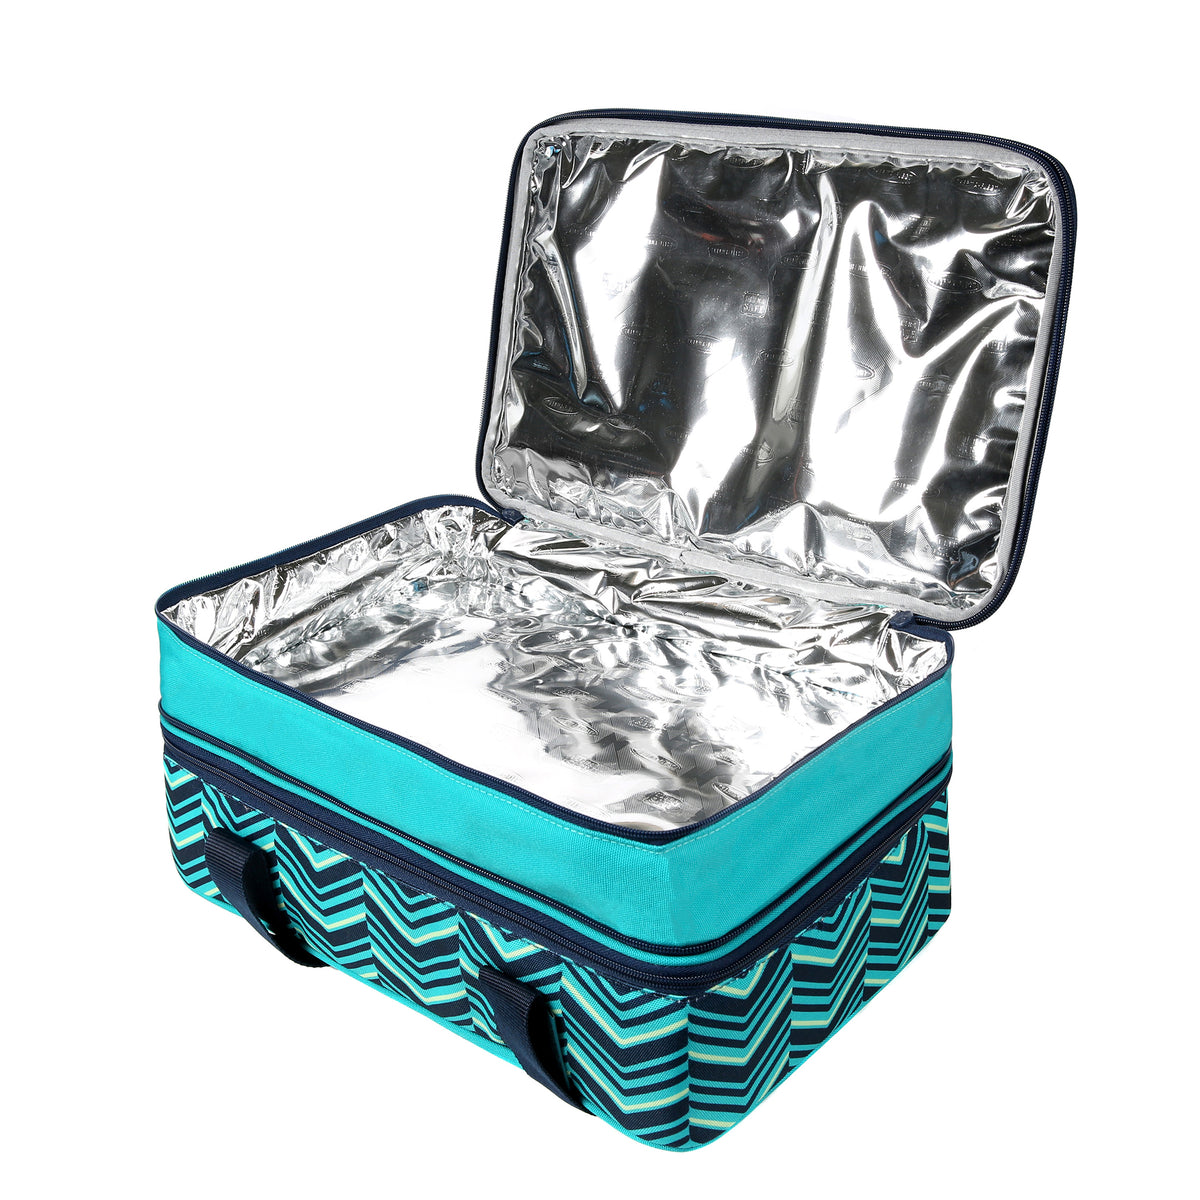 Arctic Zone® Food Pro Expandable Thermal Carrier - Teal - Top, open, empty